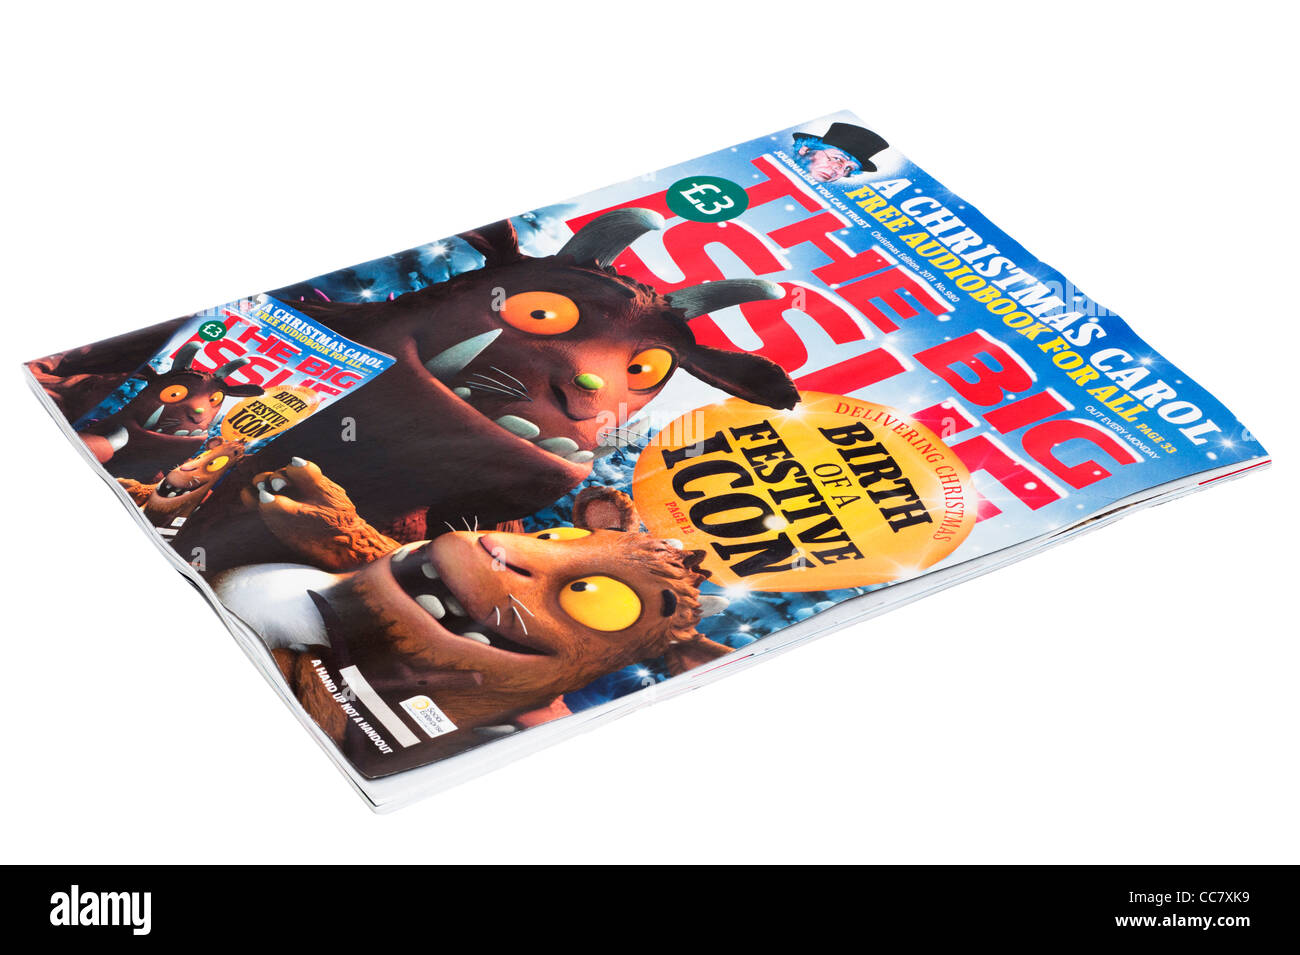 A Christmas special edition of The Big Issue magazine on a white background - Stock Image